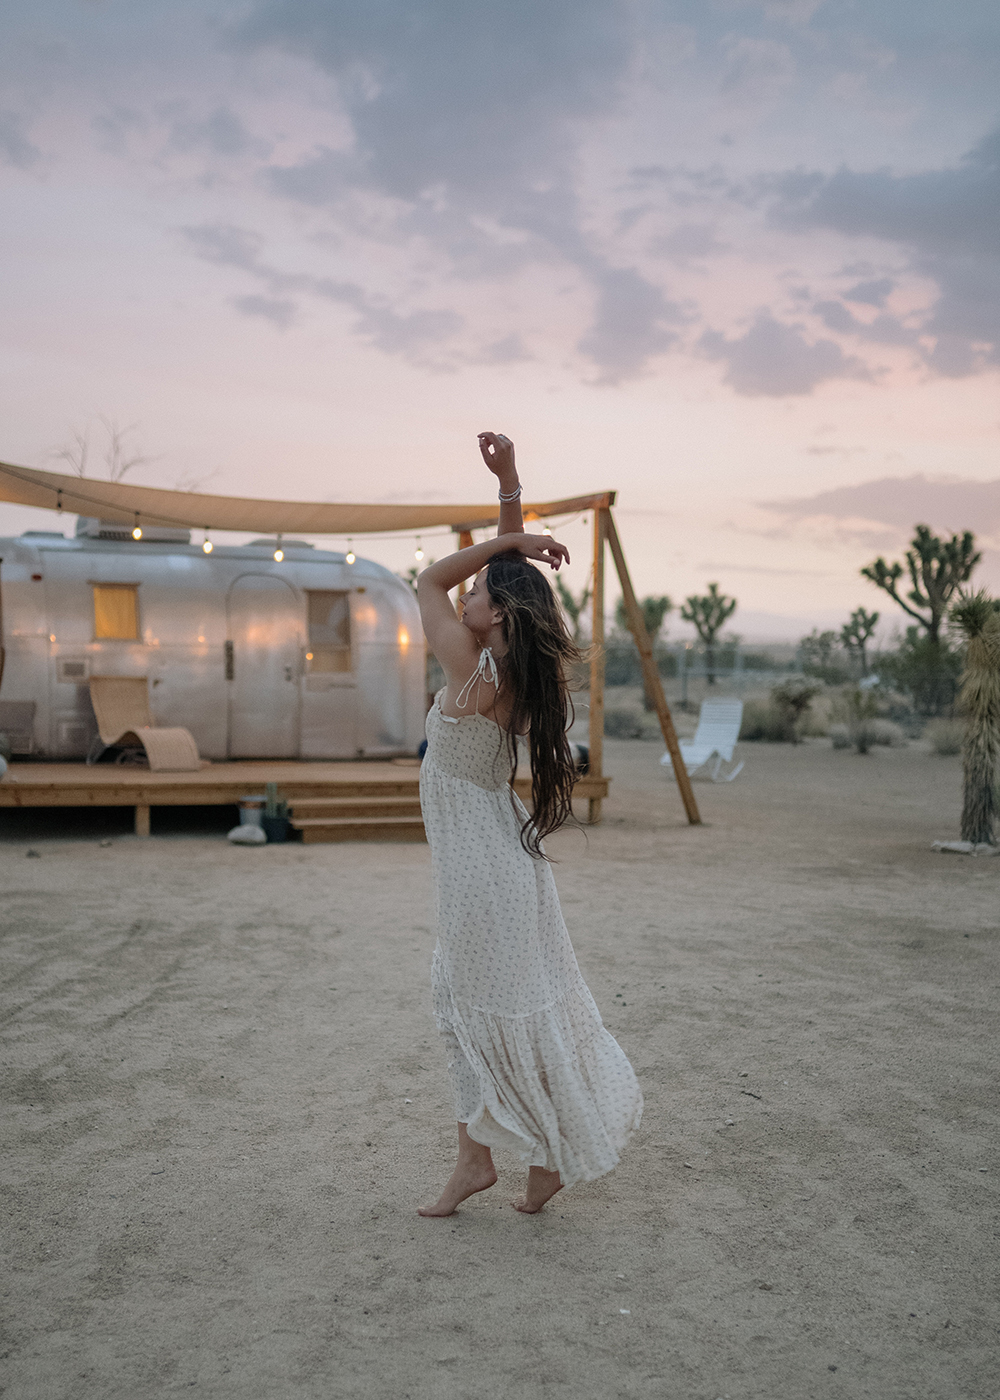 Free People is offering a series of unique wellness events during the month of August.